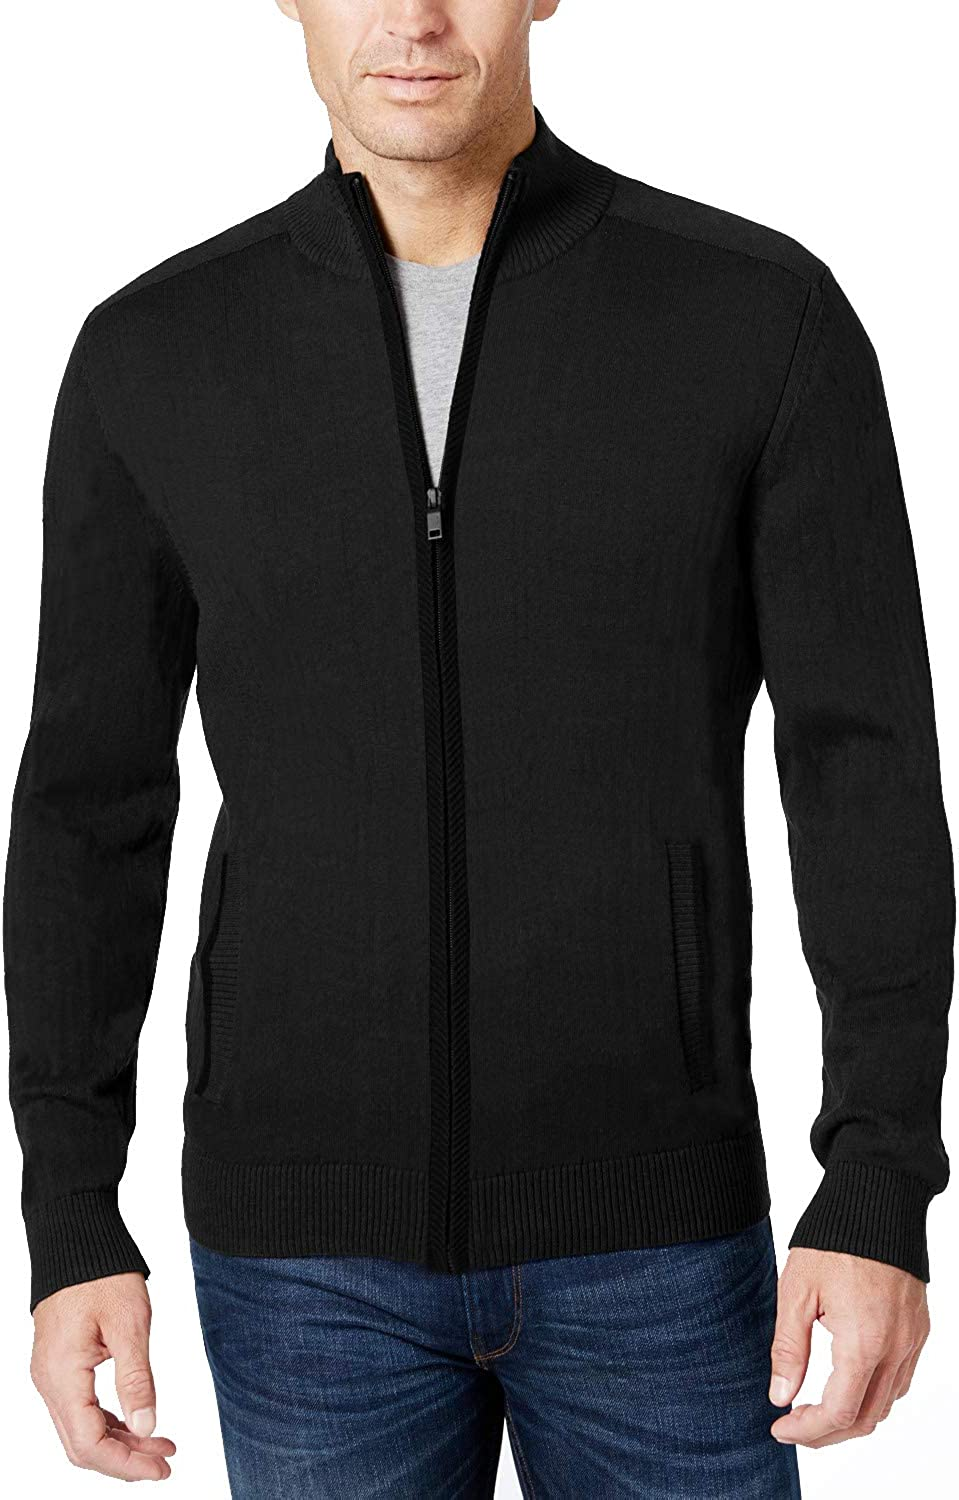 COOFANDY Men's Full Zip Sweater Slim Fit Stylish Knitted Cardigan Jacket with Pockets